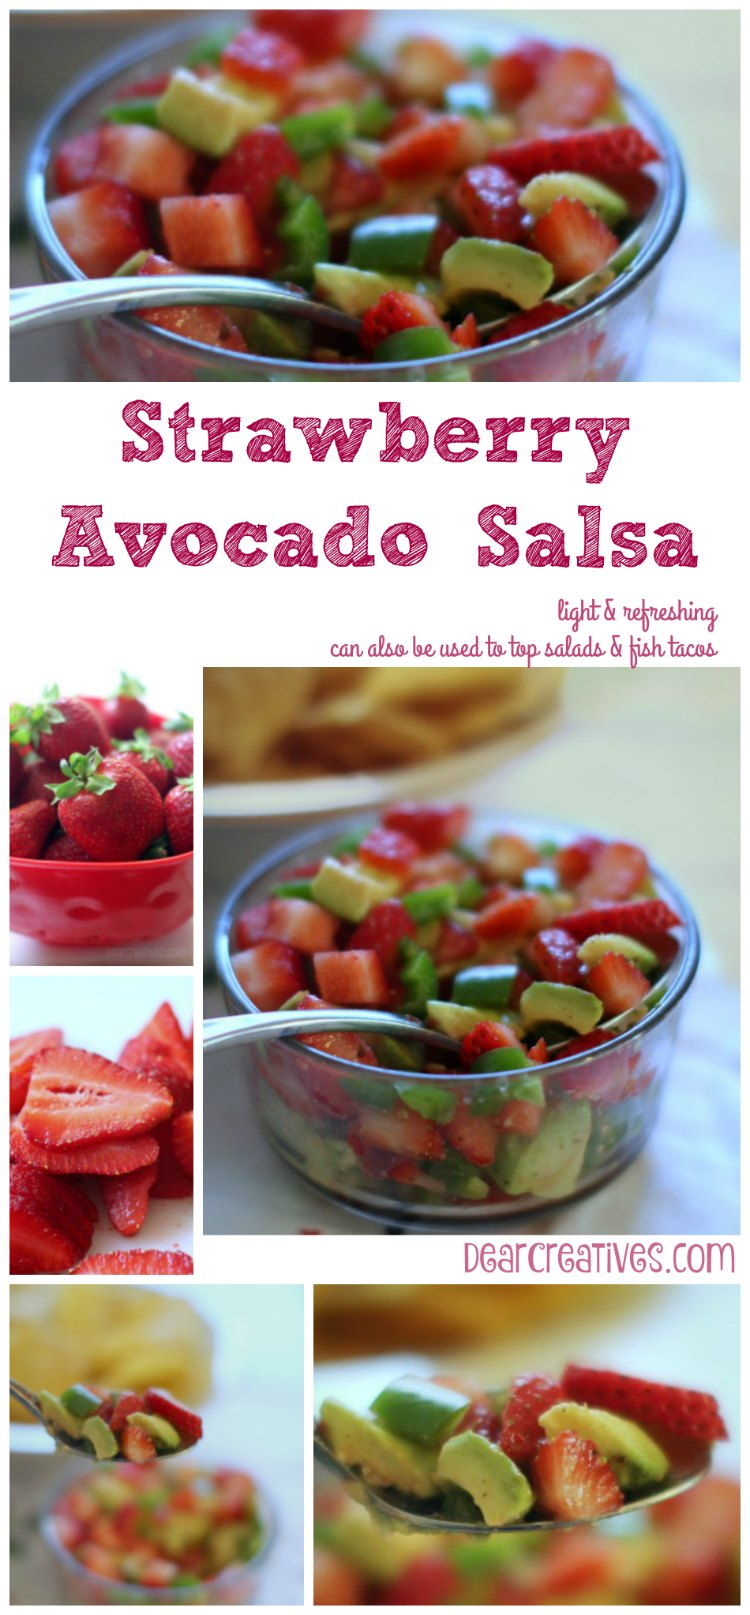 Appetizer Recipes: Strawberry Avocado Salsa | An easy appetizer recipe that can be made ahead of time | party appetizer recipe